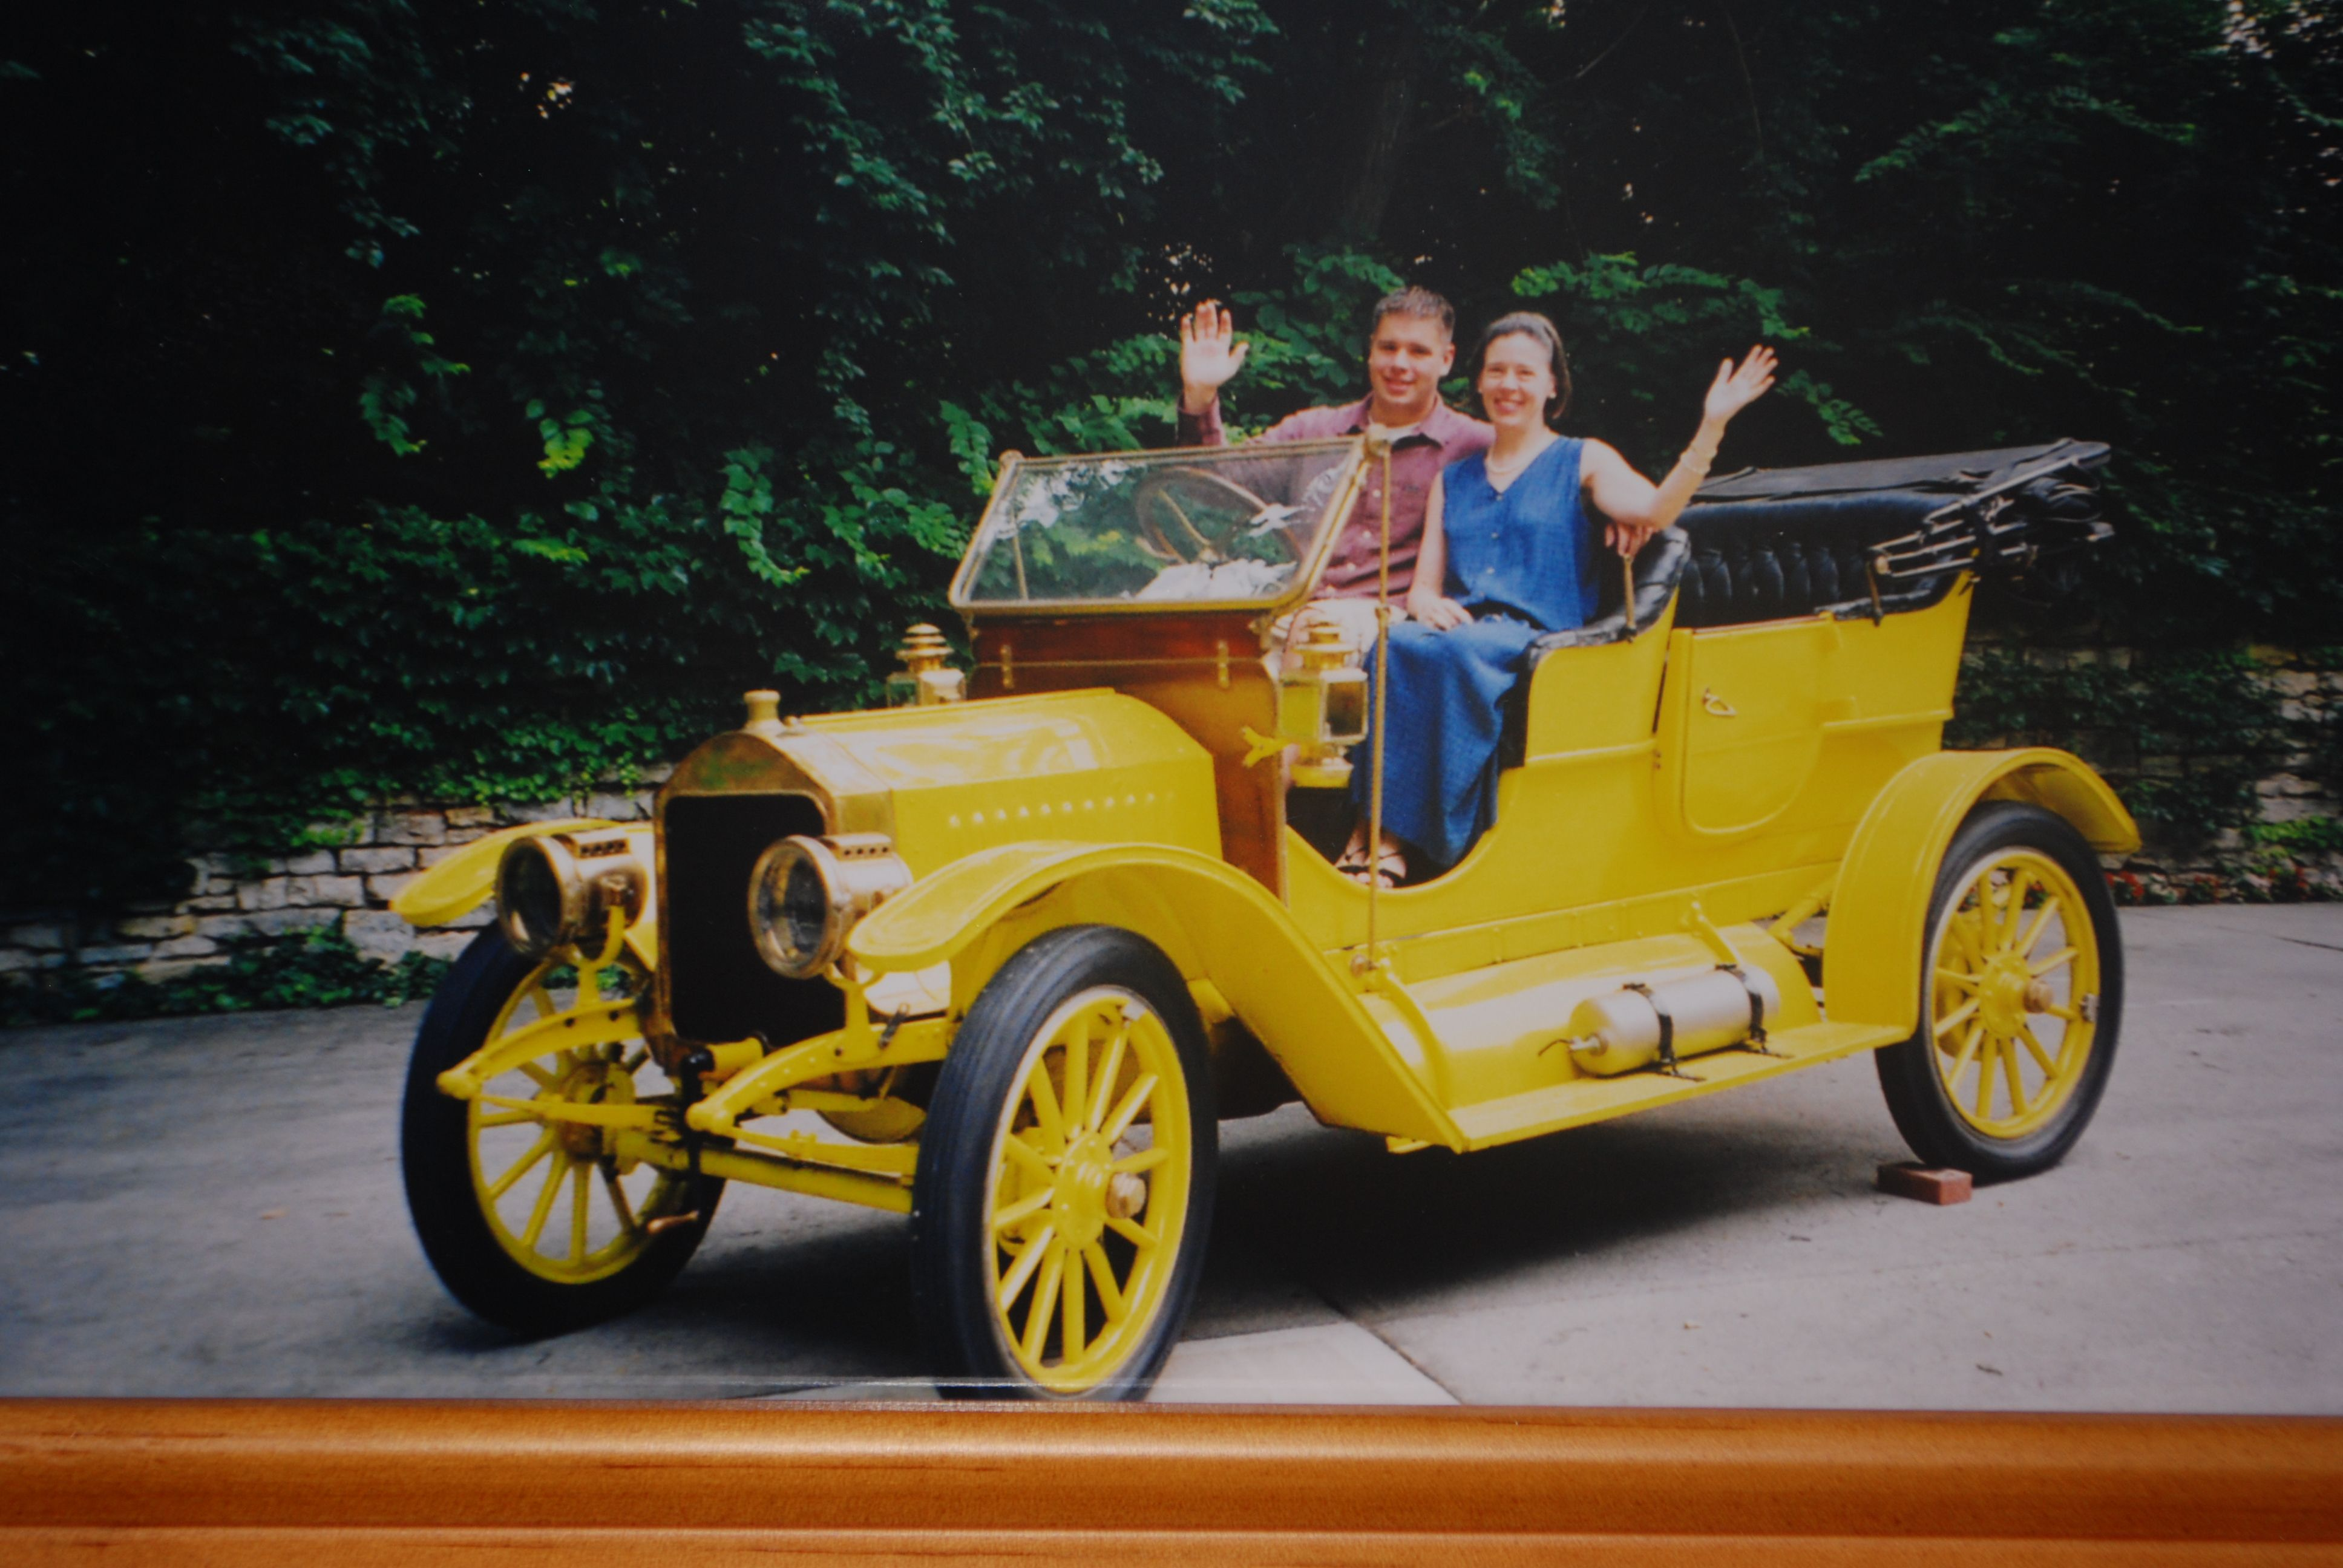 Lambert cars were built in Anderson, Indiana from 1902